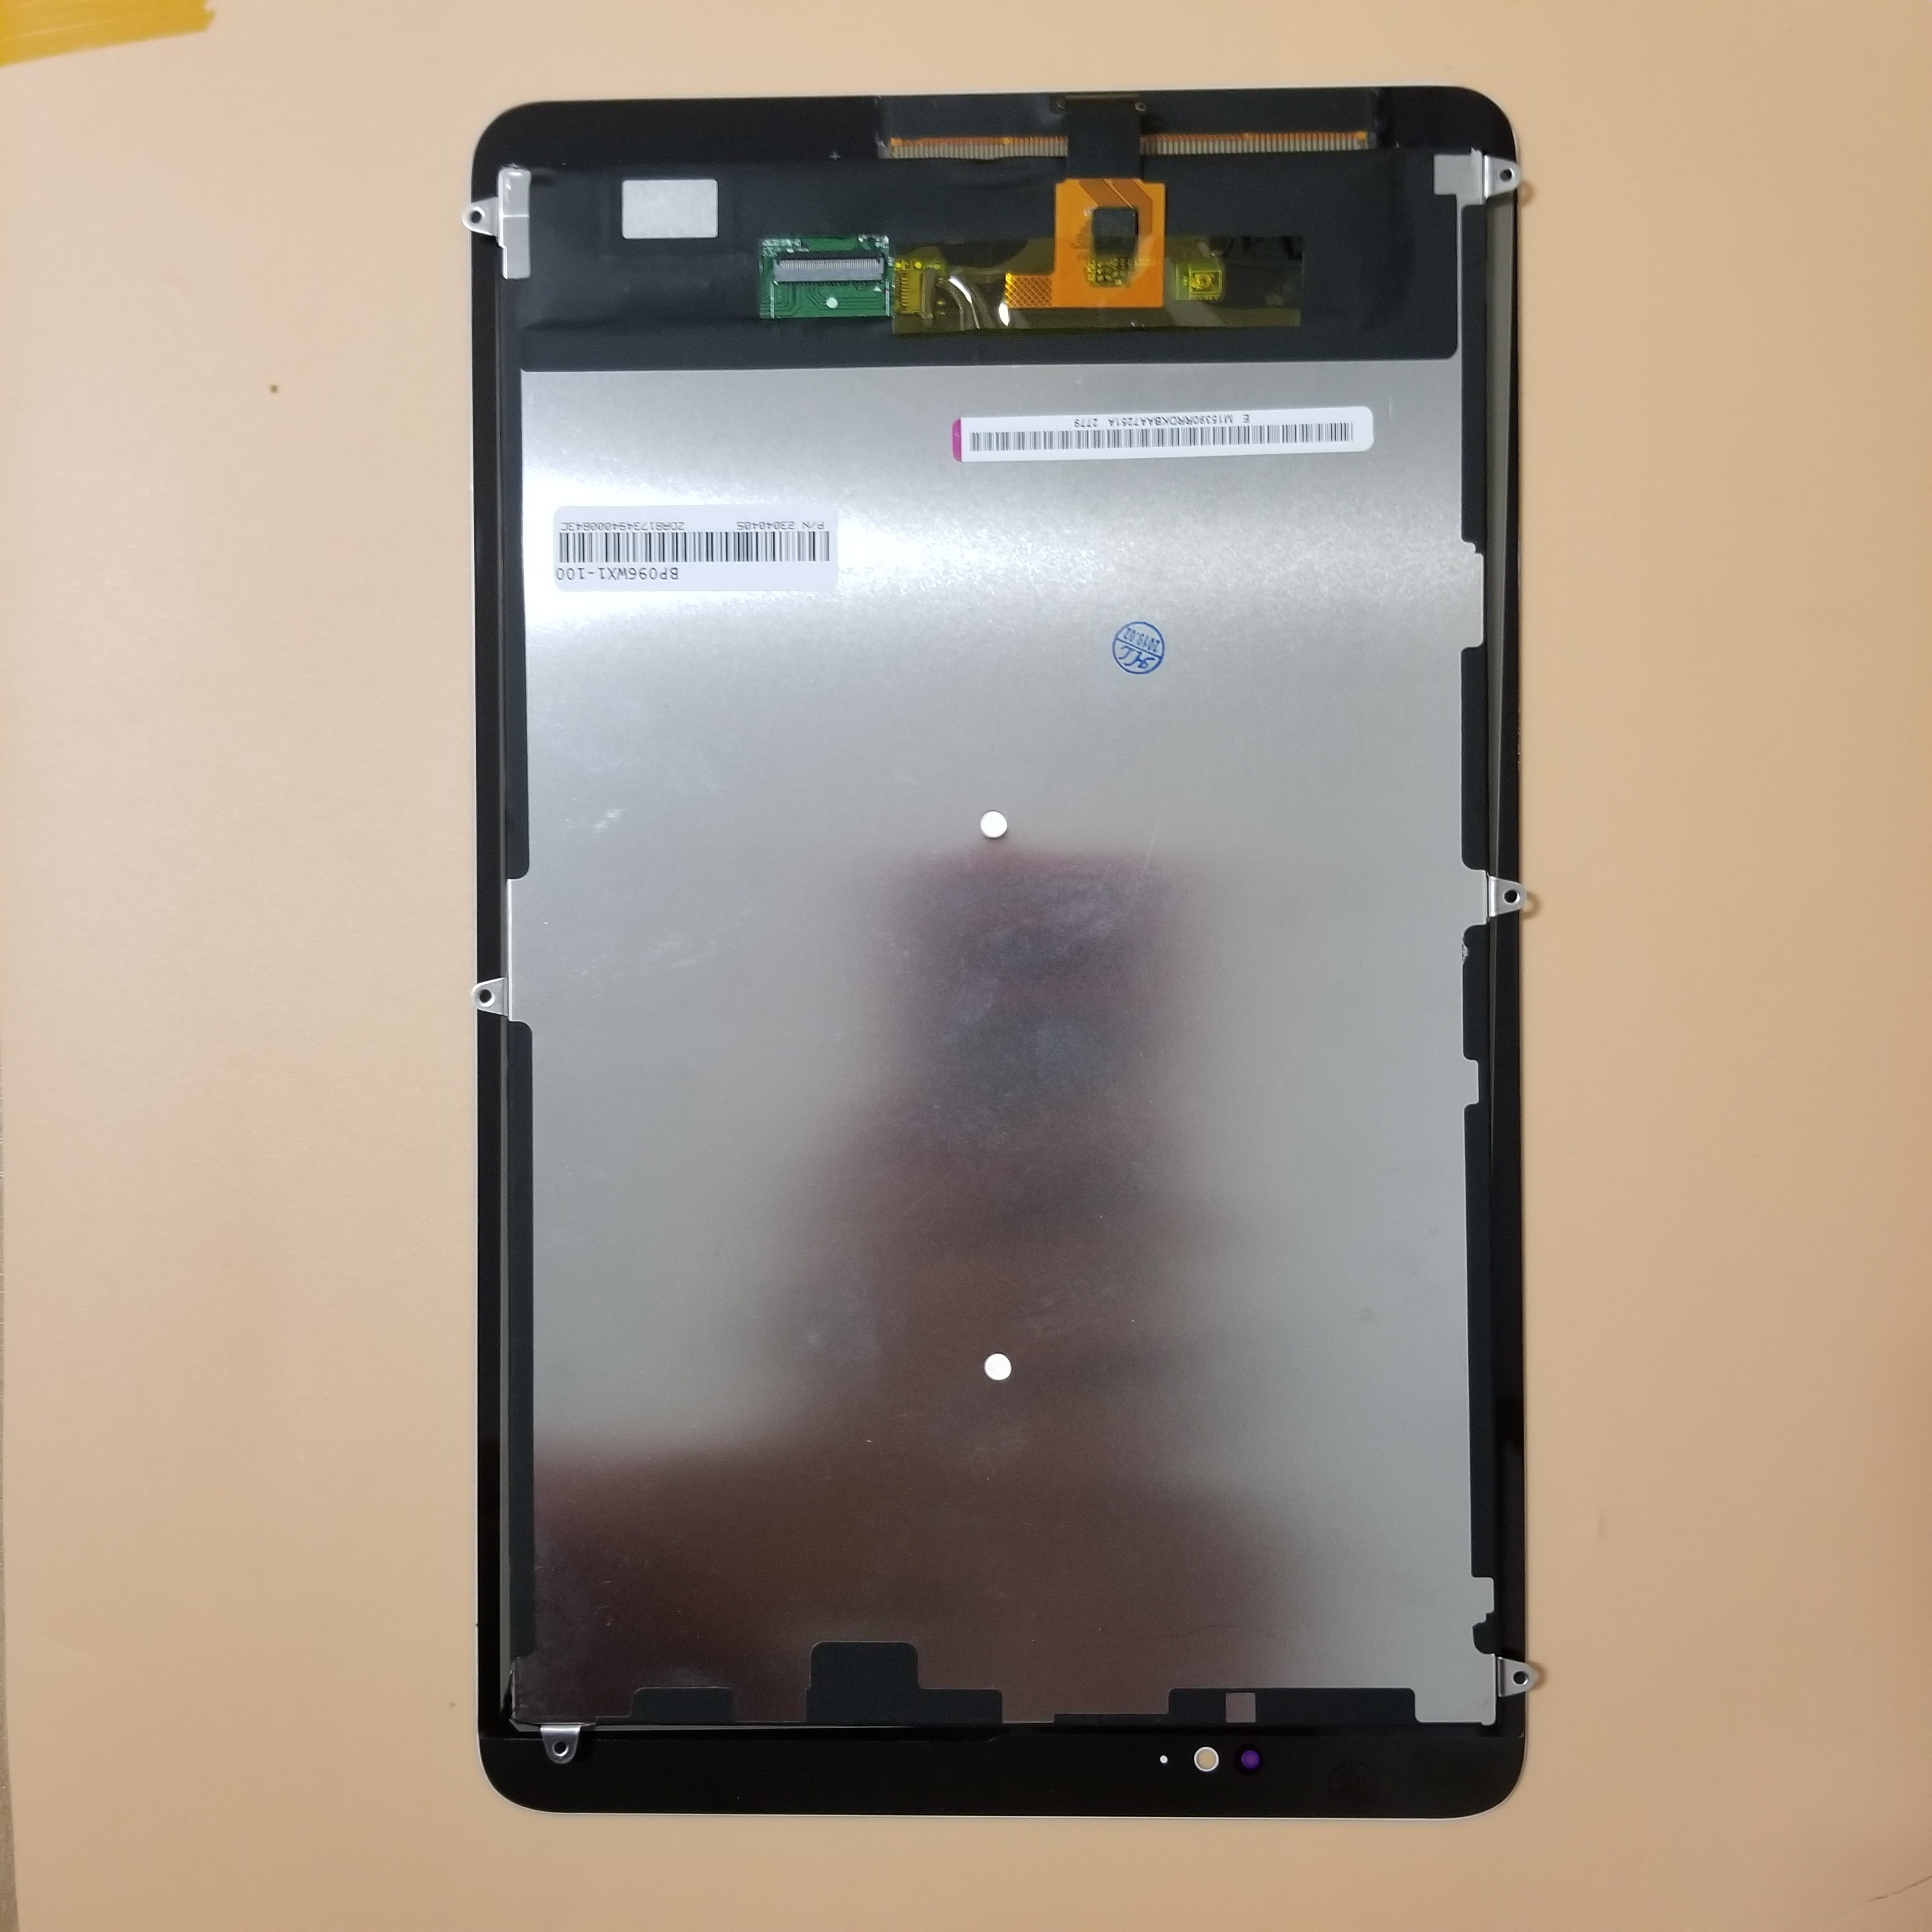 Tablet Lcds & Panels Touch For Huawei Mediapad T1 8.0 Pro 4g T1-823 T1-823l T1-821 T1-821l T1-821 Touch Screen Digitizer Sensor Replacement Parts Computer & Office